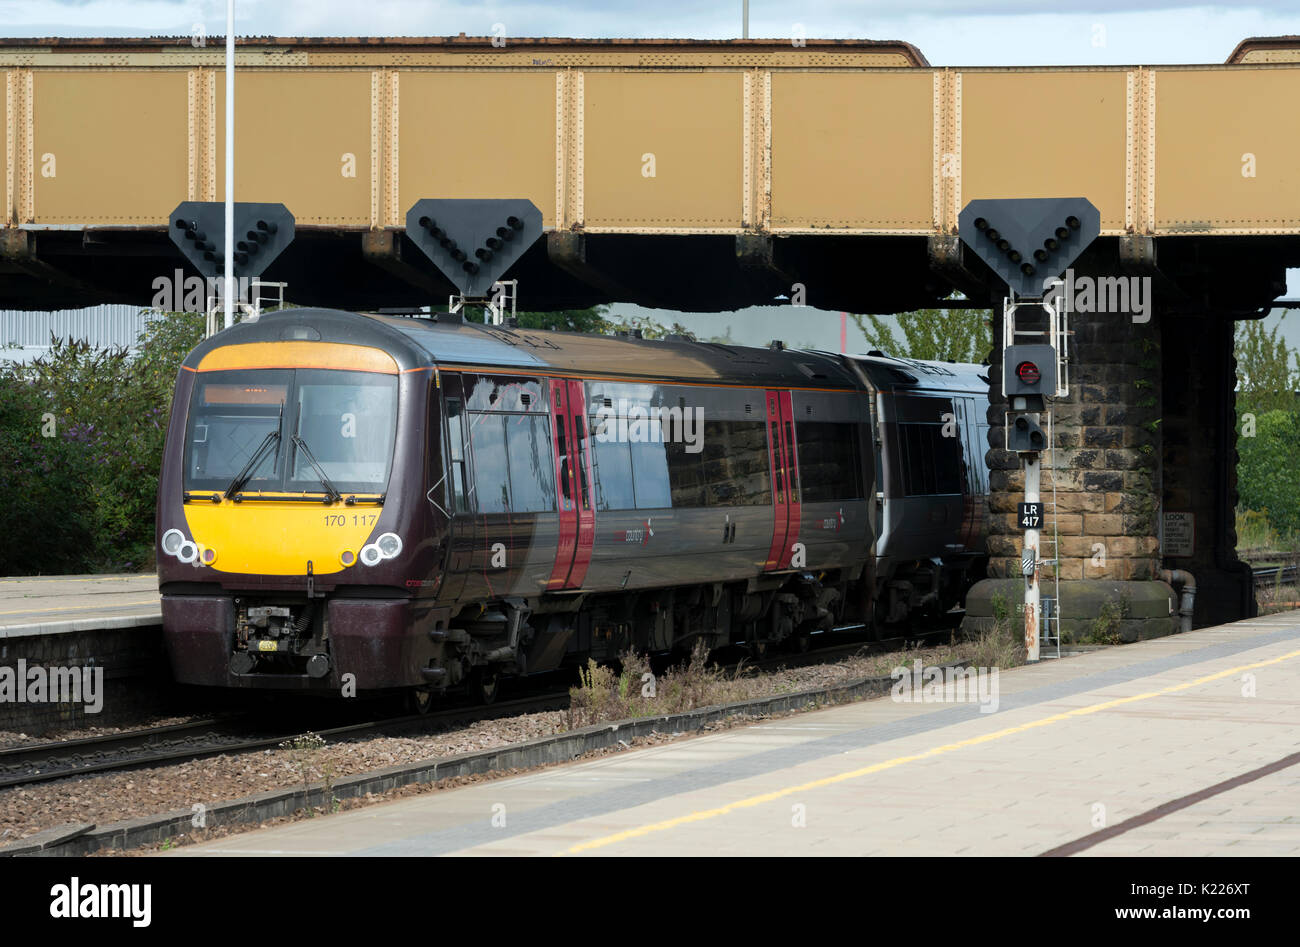 Arriva CrossCountry class 170 diesel train leaving Leicester station, Leicestershire, UK - Stock Image